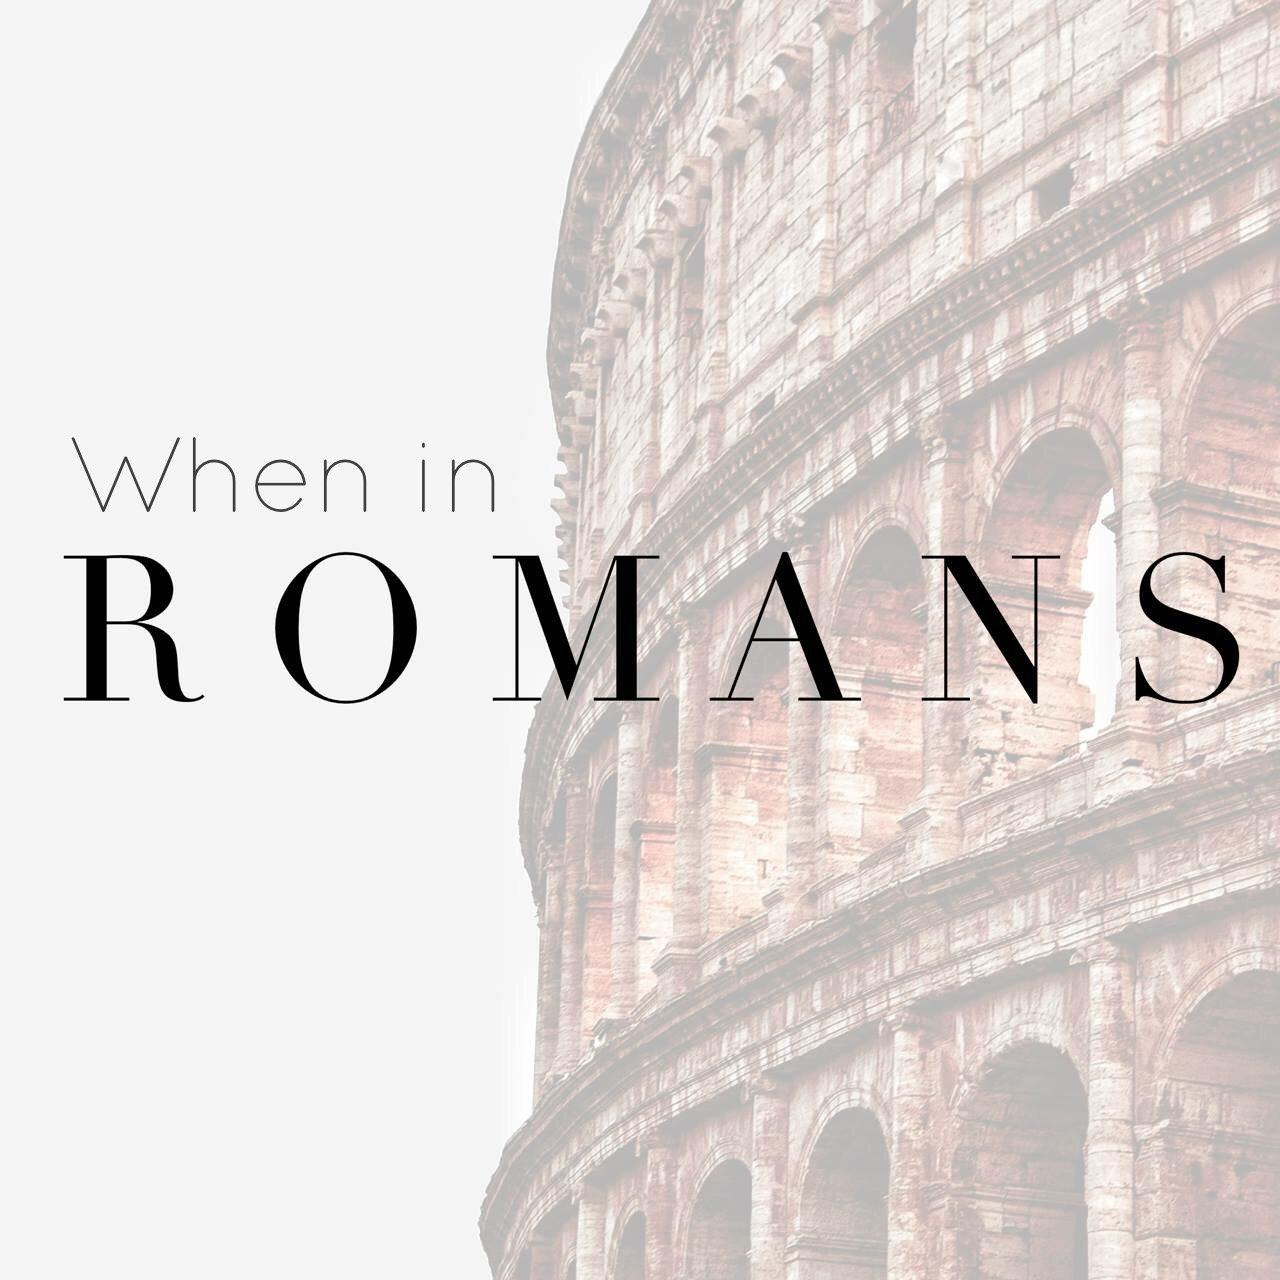 Preaching romans jason micheli heres my sermon from ascension sunday kicking off a series on romans fandeluxe Gallery